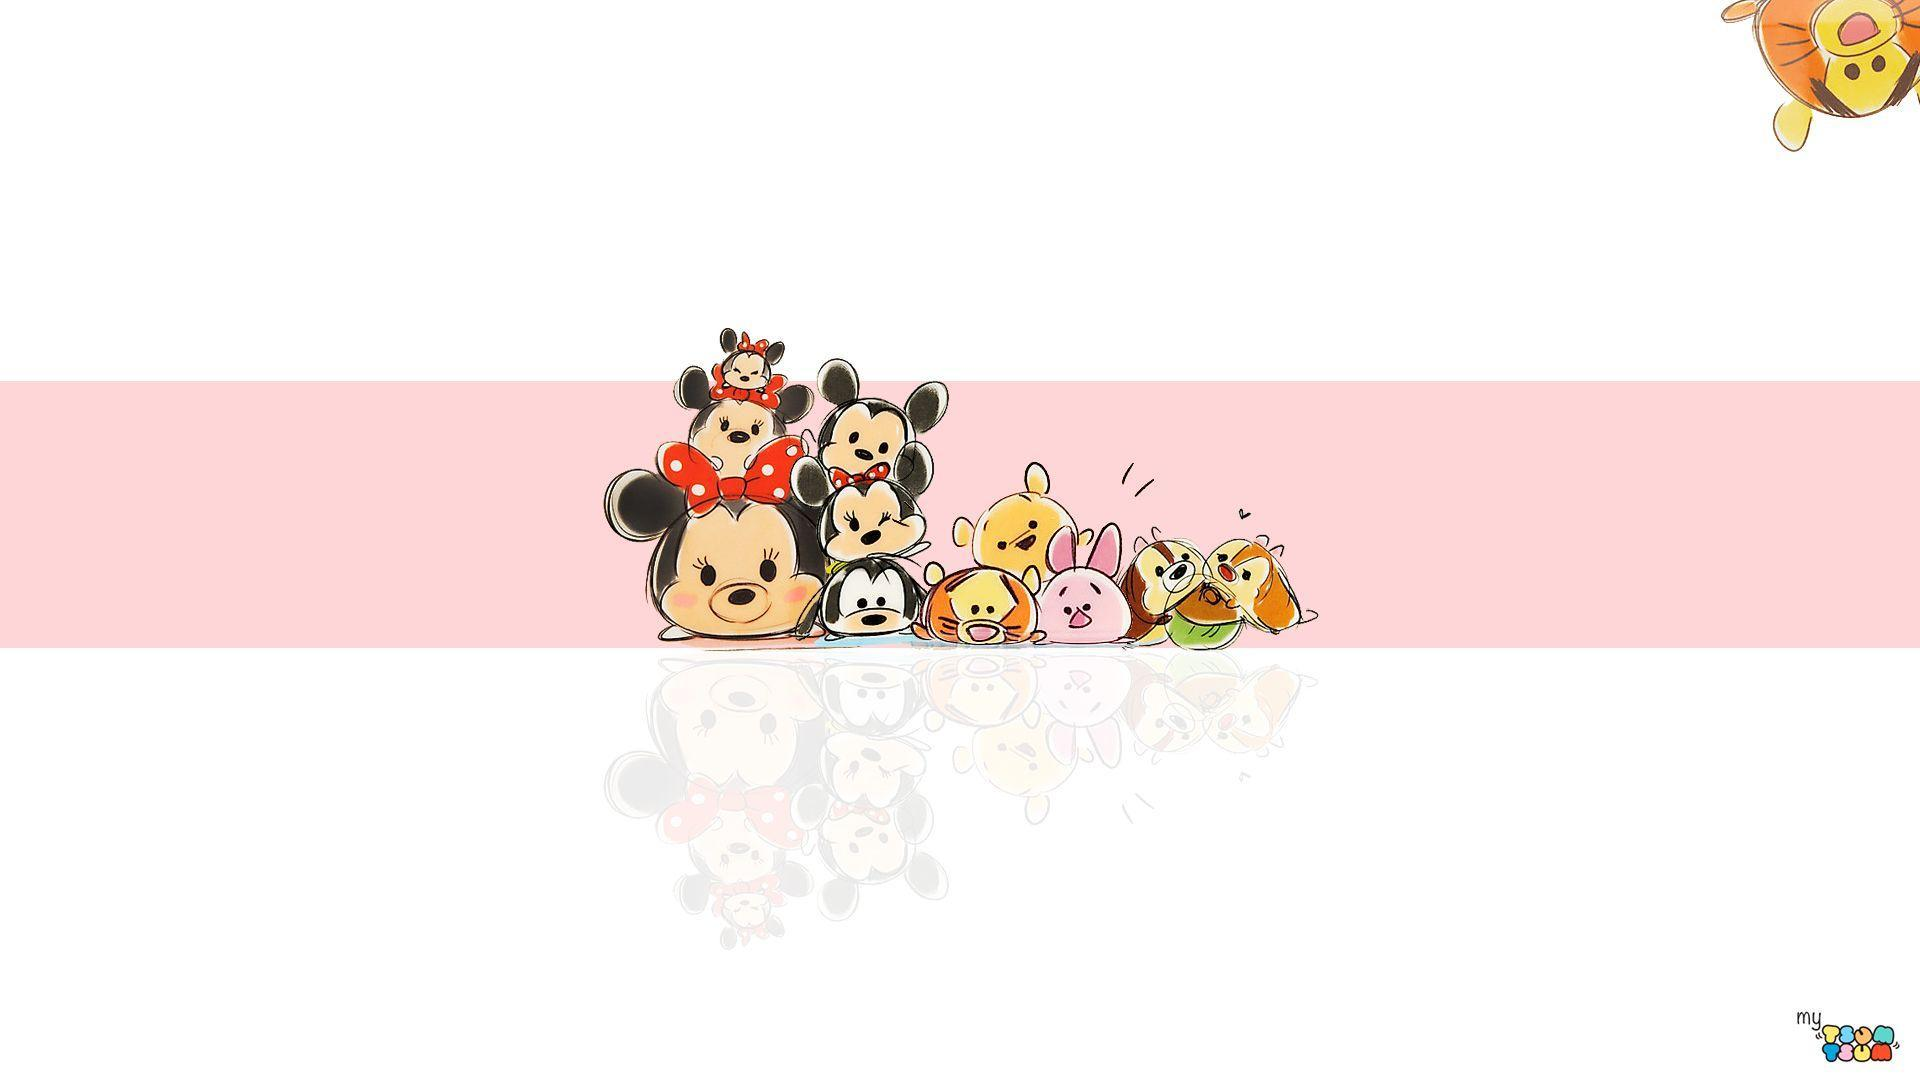 tsum tsum wallpapers wallpaper cave tsum tsum wallpapers wallpaper cave